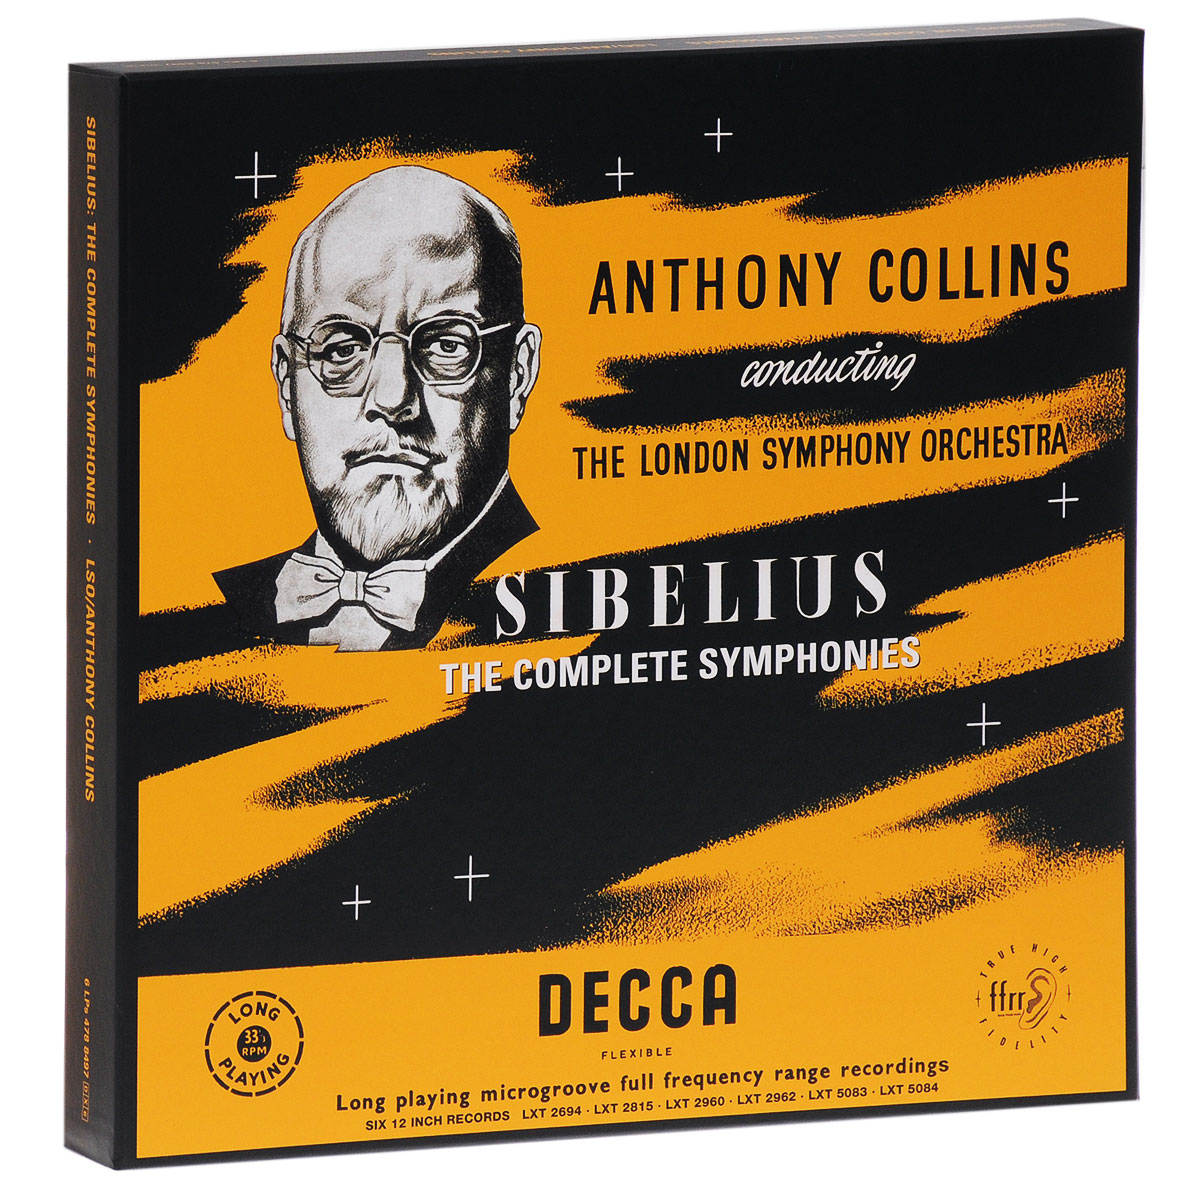 Содержание: Jean Sibelius Anthony Collins The London Symphony OrchestraLP 1: Anthony Collins. Sibelius. Symphony No. 1 In E Minor Opus 39  LP 1 - Side 1Symphony No 1 in E minor, op.391. I. Andante ma non troppo - Allegro energico2. II. Andante (ma non troppo lento)  LP 1 - Side 2   1. III. Scherzo: Allegro 2. IV. Finale (quasi una fantasia)LP 2: Anthony Collins. Sibelius. Symphony No. 2 In D Major, Opus 43 LP 2 - Side 1Symphony No.2 in D major, op.4301. I. Allegretto - Poco allegro - Tranquillo, ma poco a poco ravvivando il tempo all'allegro 02. II. Tempo andante ma rubato - Andante sostenuto  LP 2 - Side 2   01. III. Vivacissimo - Lento e soave - Largamente 02. IV. Finale: Allegro moderato LP 3: Anthony Collins. Sibelius. Symphony No.3 In С Major, Opus 52 / Symphony No.7 In С Major, Opus 105  LP 3 - Side 1Symphony No.3 in С major, op.5201. I. Allegro moderato 02. II. Andantino con moto, quasi allegretto 03. III. Moderato - Allegro (ma non tanto)  LP 3 - Side 2   01. Symphony No.7 in С major, op.105 LP 4: Anthony Collins. Sibelius. Symphony No 4 In A Minor, Opus 63 / Pohjola's Daughter. Symphonic Fantasia, Opus 49  LP 4 - Side 1   Symphony No 4 in A minor, op.6301. I. Tempo molto moderato, quasi adagio02. II. Allegro molto vivace03. III. II tempo largo LP 4 - Side 2   01. IV. Allegro02. Pohjola's Daughter, оp.49LP 5: Anthony Collins. Sibelius. Symphony No.5 In E Flat Major, Opus 82 / Night Ride And Sunrise-Symphonic Poem, Opus 49  LP 5 - Side 1   Symphony No.5 in E flat major, op.8201. I. Tempo molto moderato - Largamente-Allegro moderato 02. II. Andante mosso, quasi allegretto  LP 5 - Side 2   01. III. Allegro molto02. Night Ride and Sunrise, op.55LP 6: Anthony Collins. Sibelius. Symphony No.6 In D Minor, Opus 104 / Pelleas Et Melisande Suite Opus 46  LP 6 - Side 1   Symphony No.6 in D minor, op. 10401. I. Allegro molto moderato02. II. Allegretto moderato03. III. Poco vivace LP 6 - Side 2   01. IV Allegro moltoPelleas et Melisande, op.46 - Suite02. II. Melisande03. VII. Melisande at the Spinning-wheel 04. VIII. Entr'acte 05. IX. The Death of Melisande